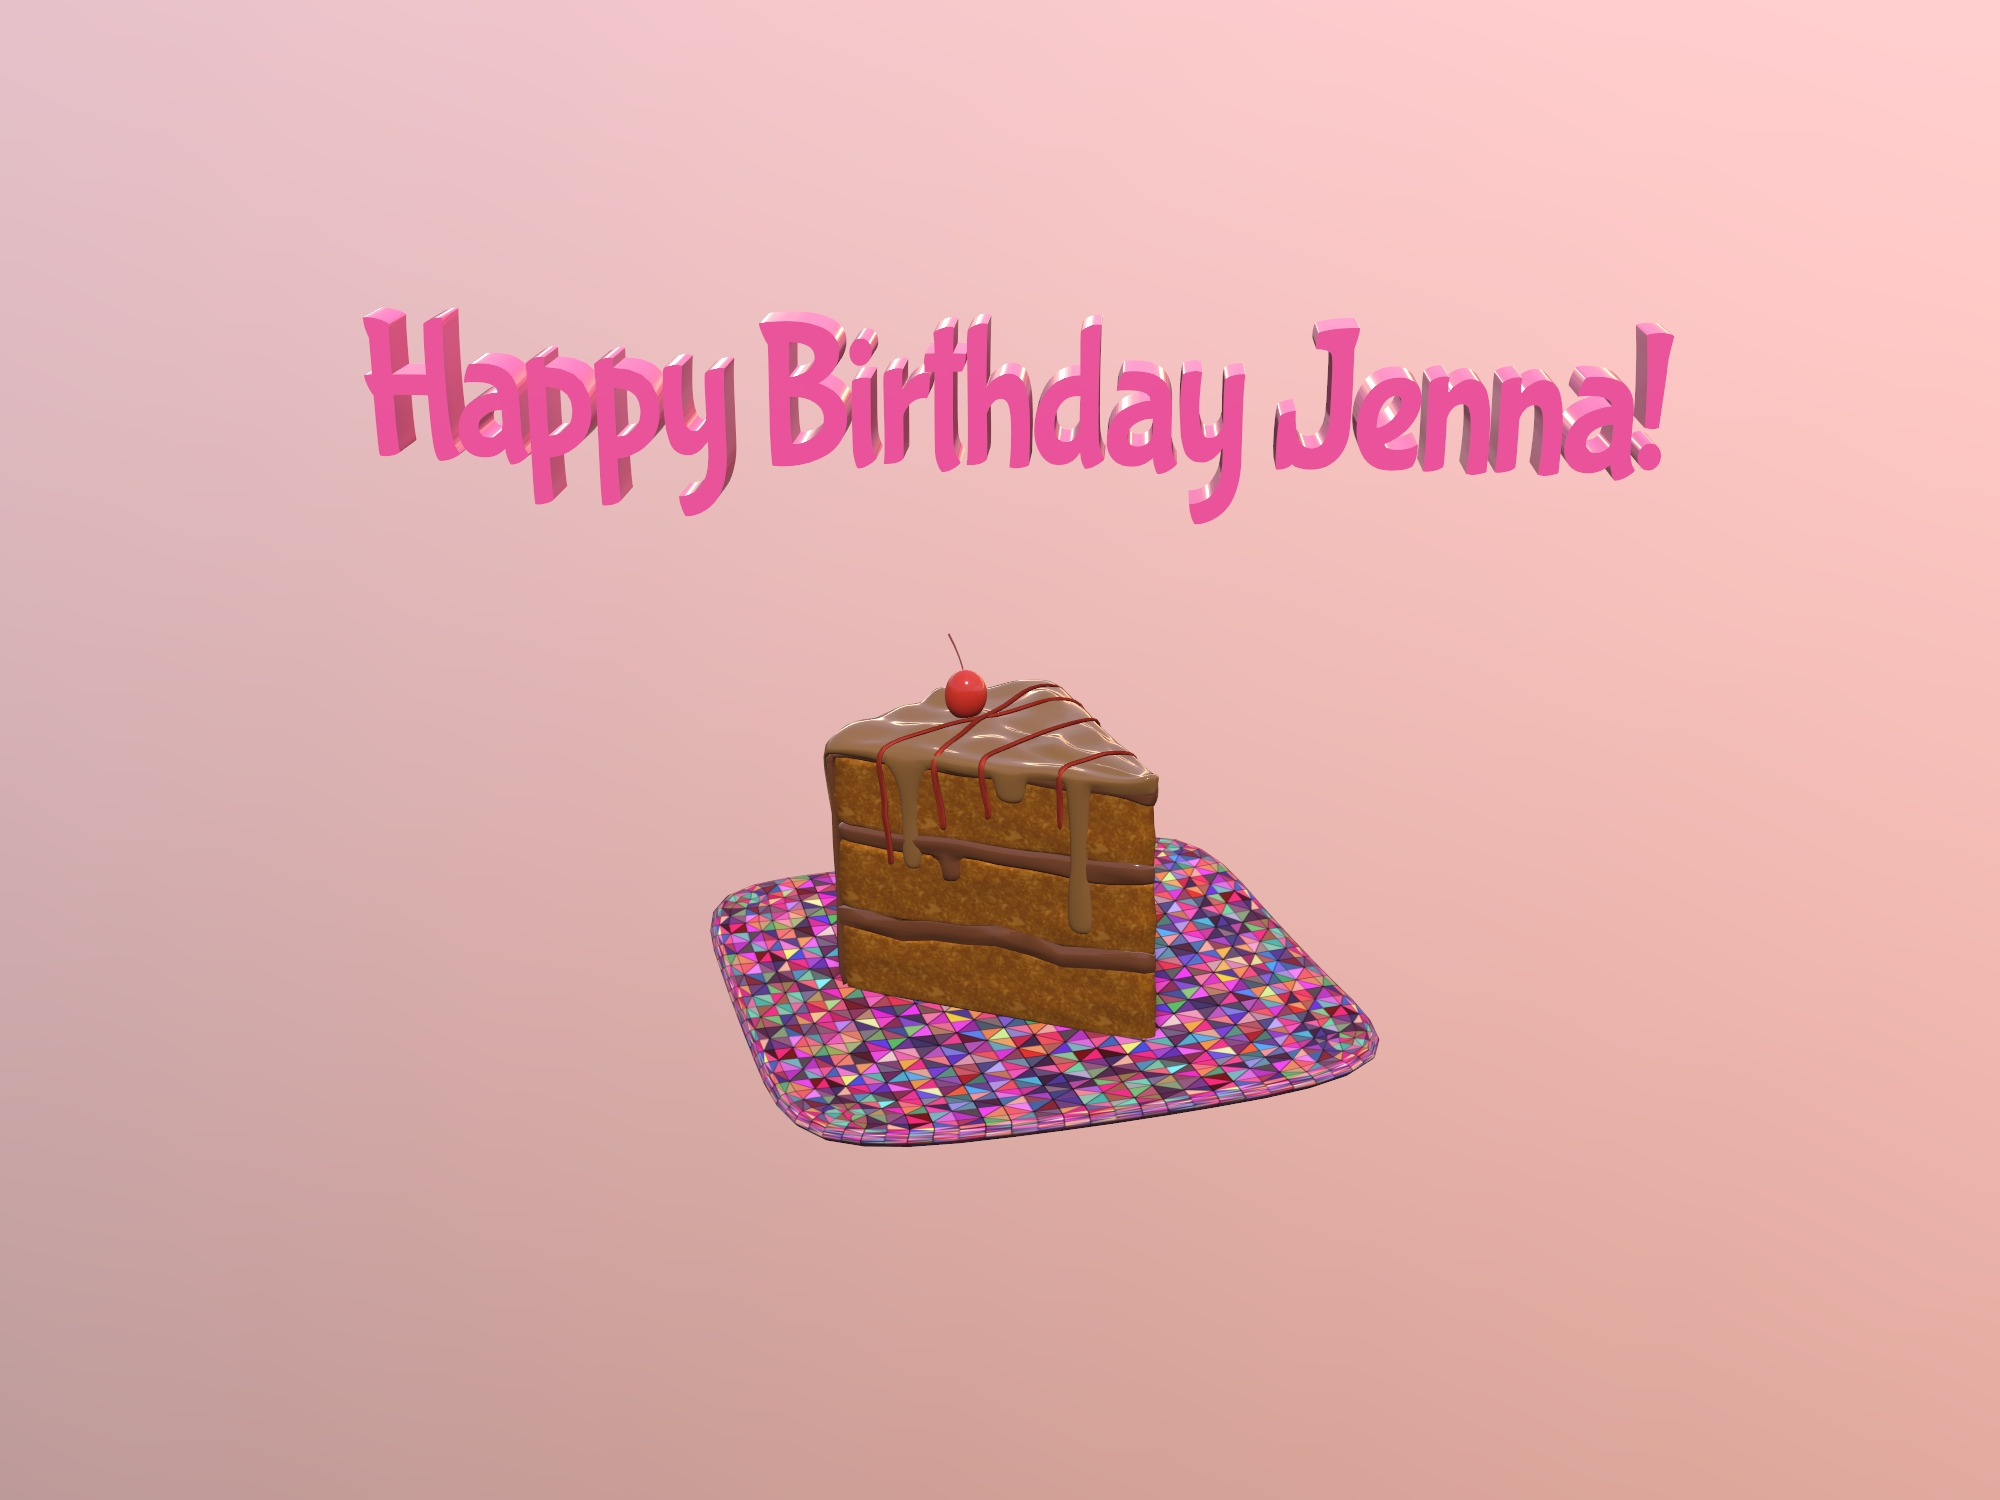 Happy Birthday Jenna (copy) - 3D design by cathyrose on Jan 16, 2019